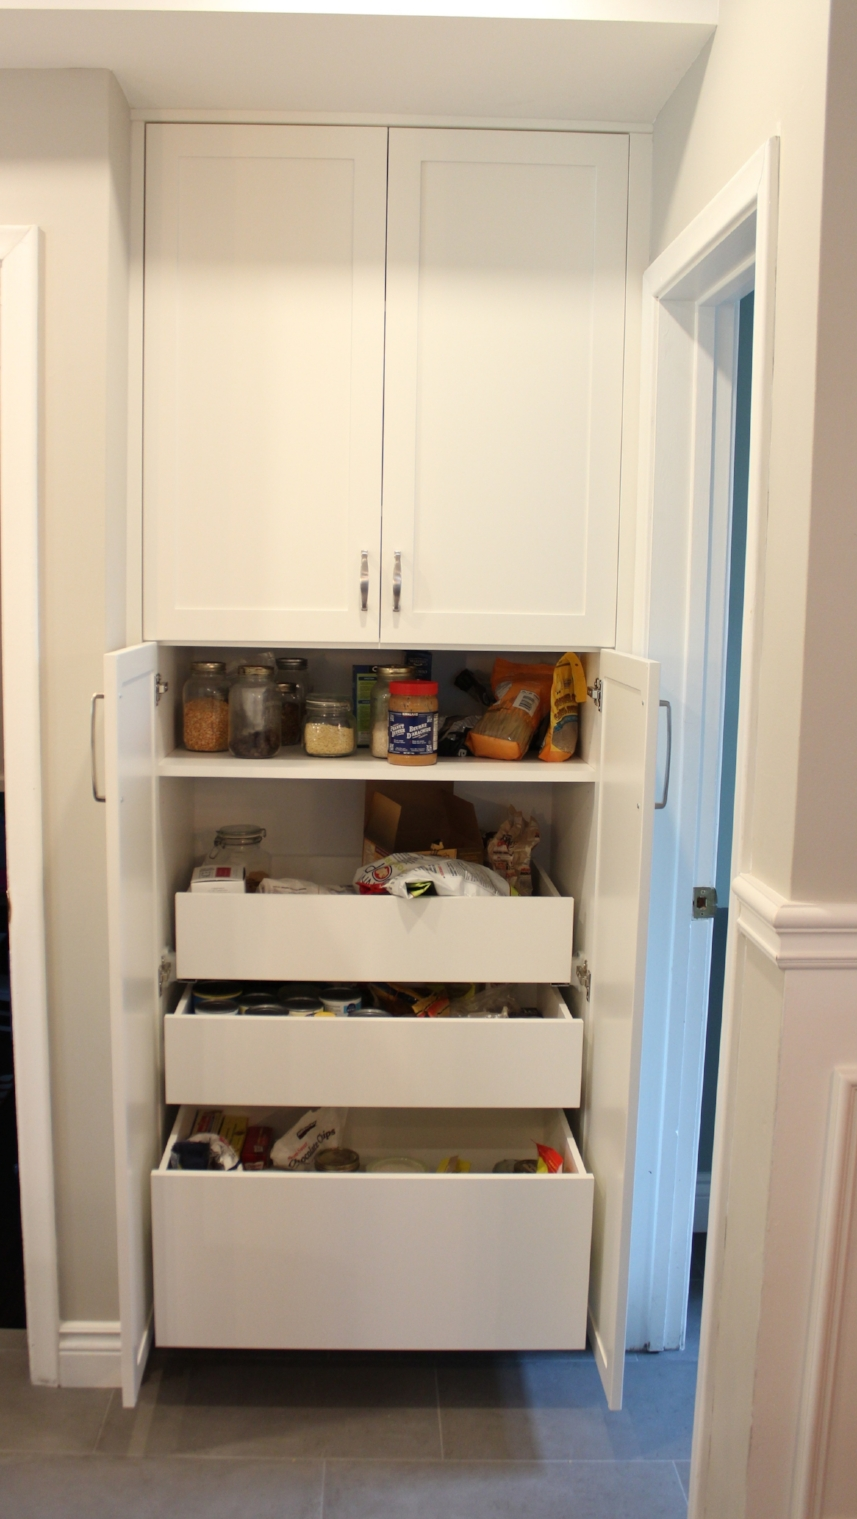 "This is a GIANT pantry: 24"" deep, 30"" wide and 96"" tall."